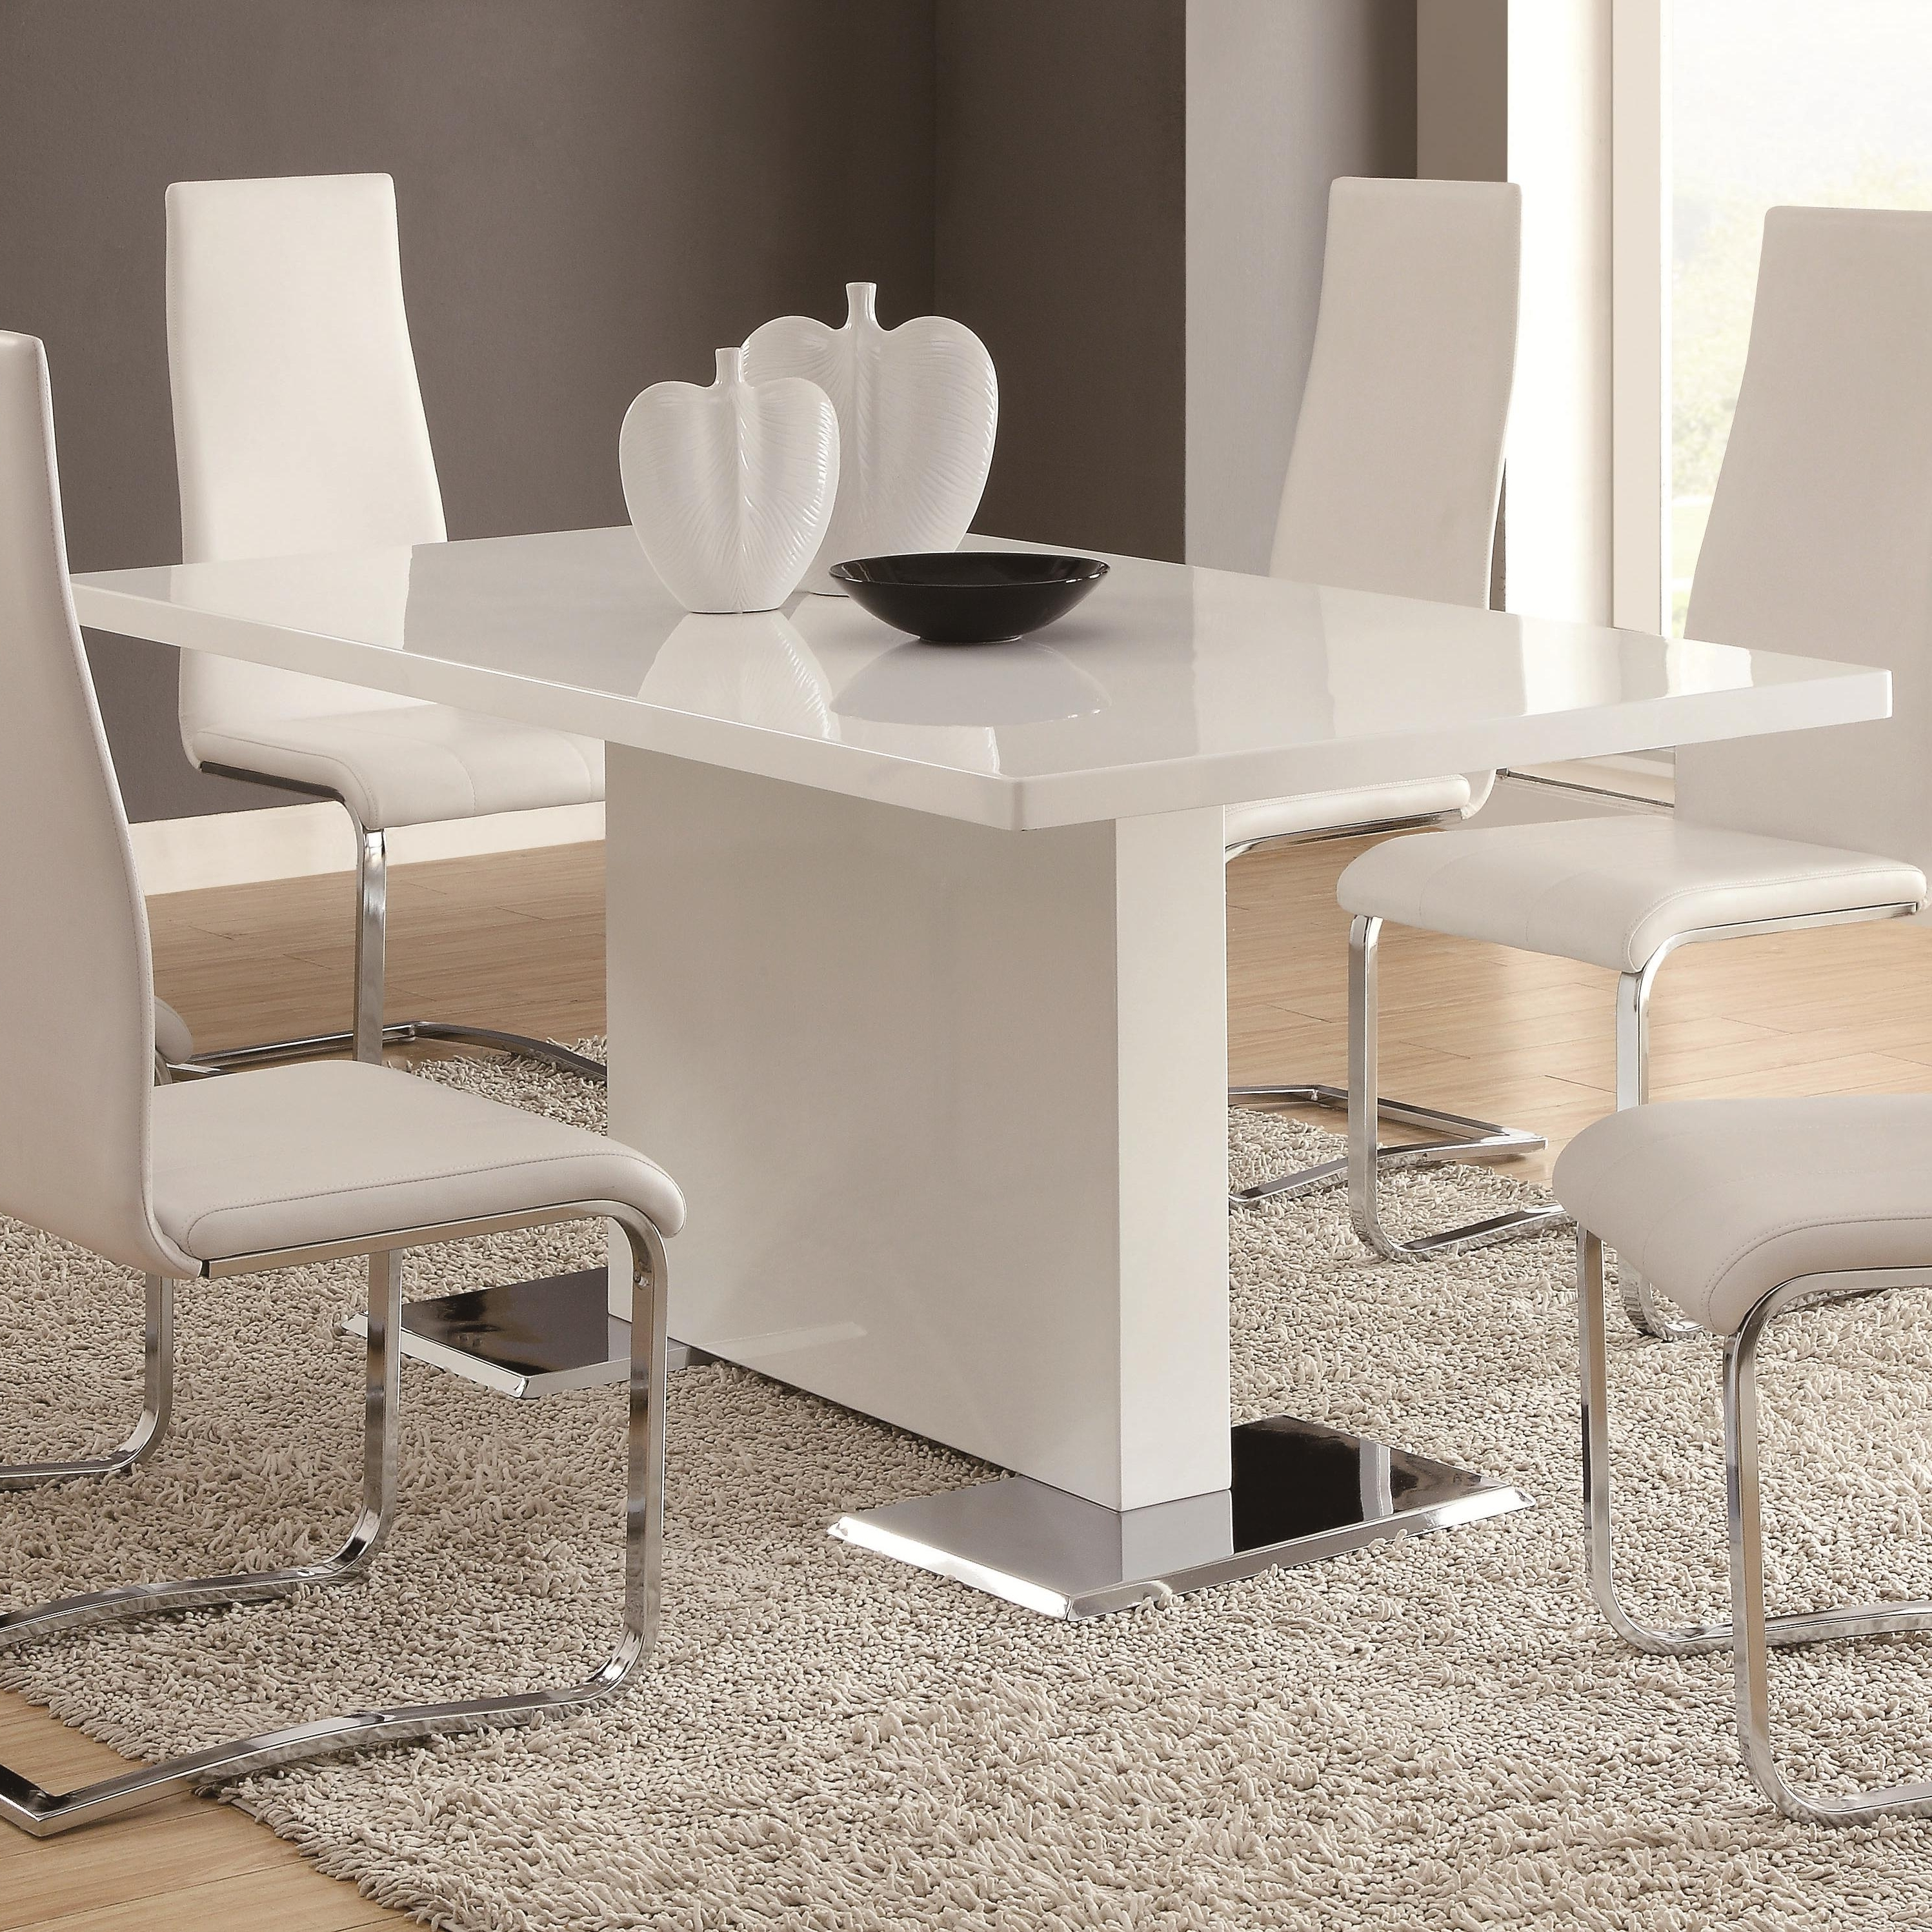 Most Recent Contemporary Base Dining Tables With Regard To Coaster Modern Dining 102310 White Dining Table With Chrome Metal (View 17 of 25)